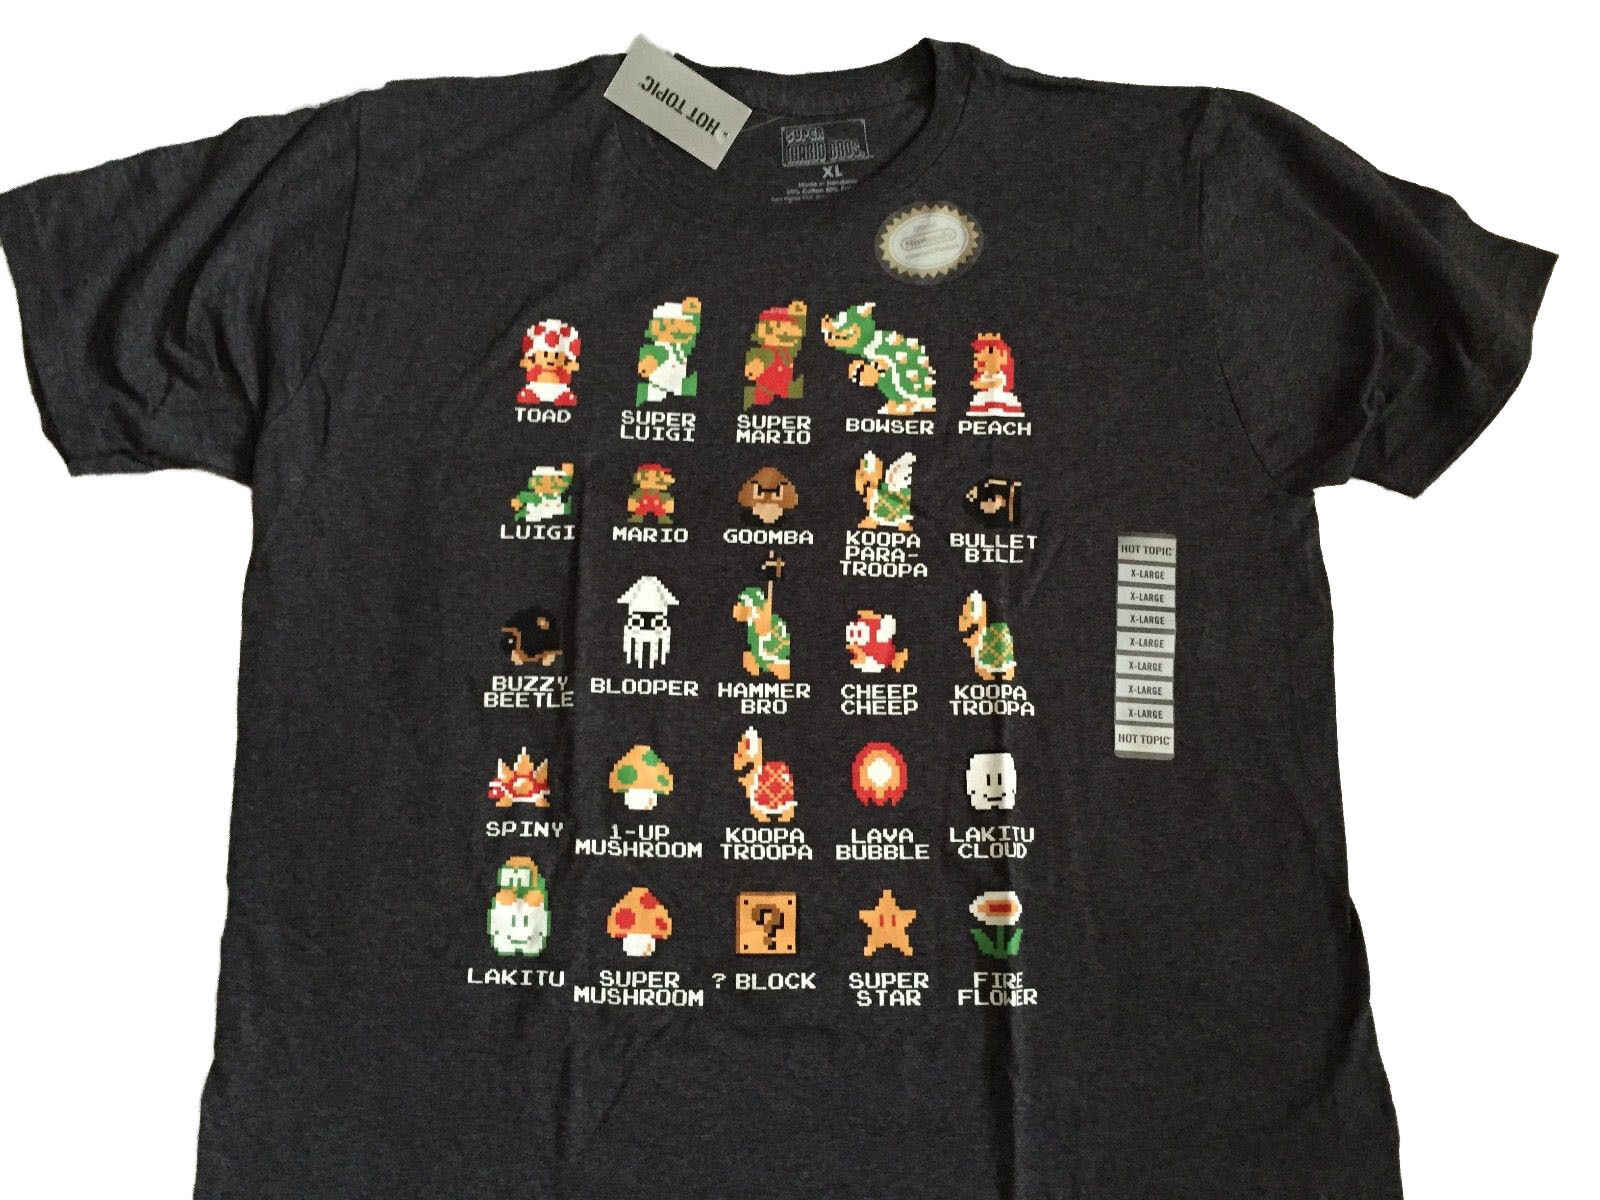 Super Mario Bros Nintendo NES 8 Bit Cast Vintage Classic Video Game T-shirt Zomer Men'S fashion Tee 2019 fashion t-shirt